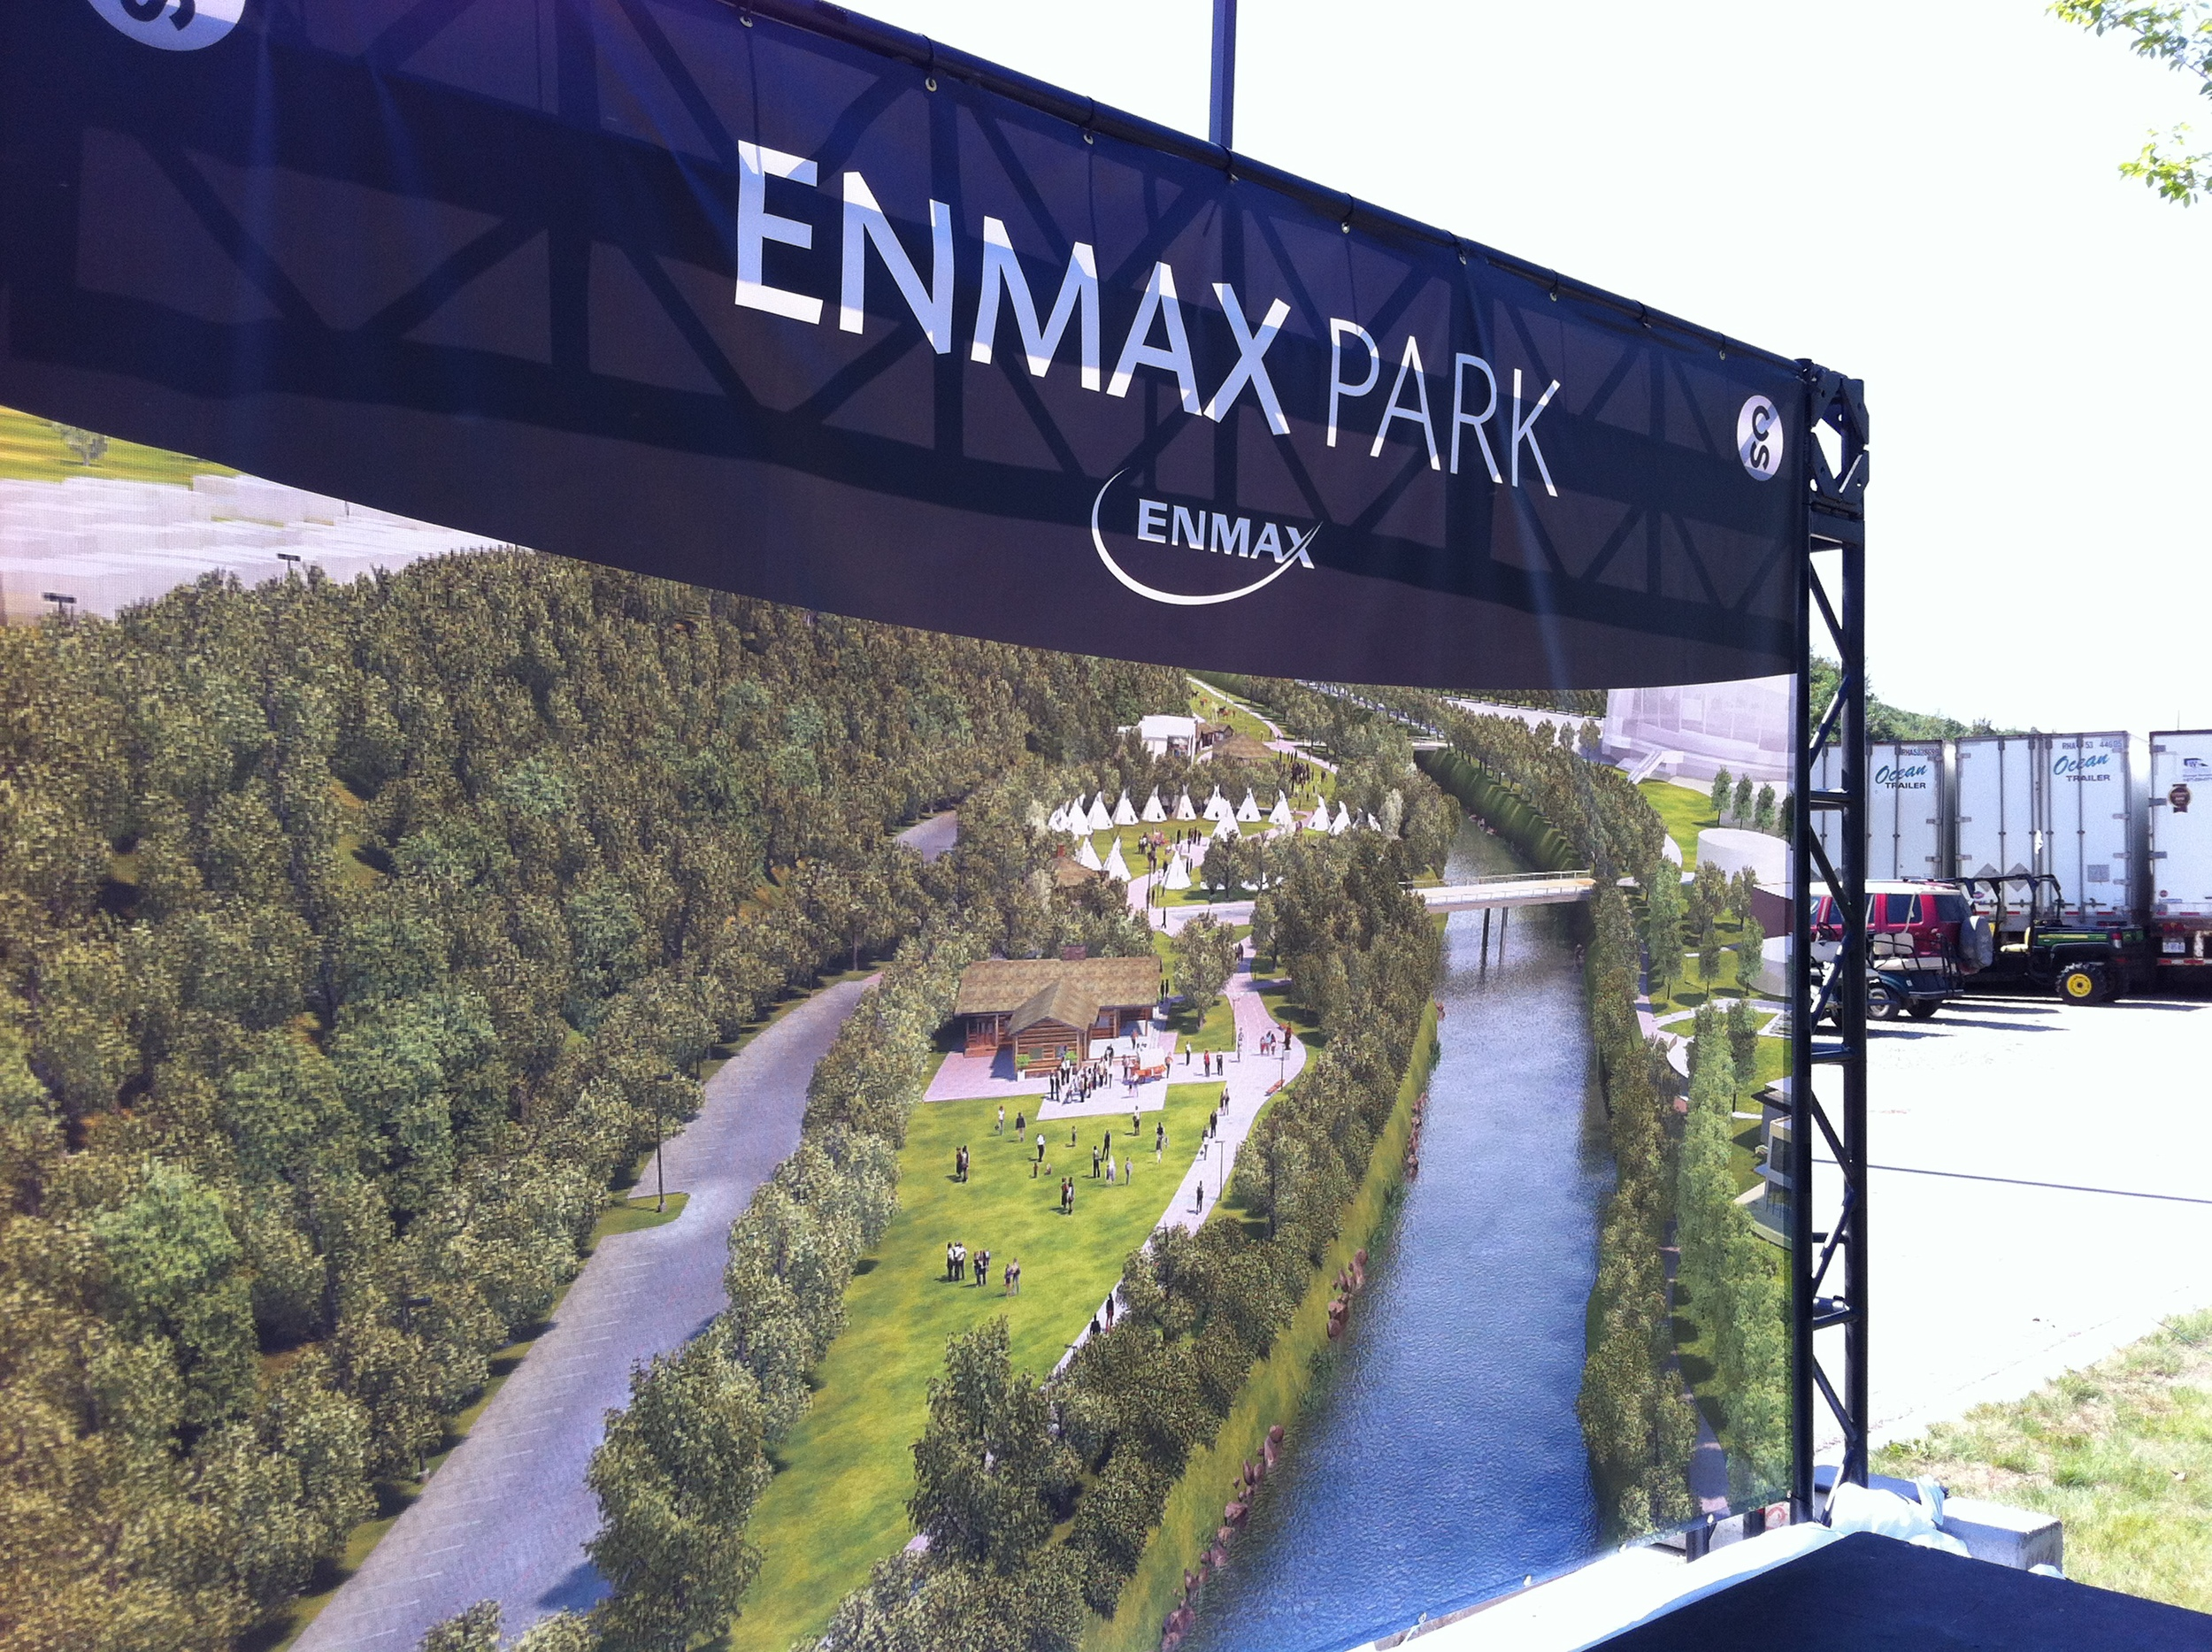 ENMAX Park showing enhanced park space including new Indian Village site.